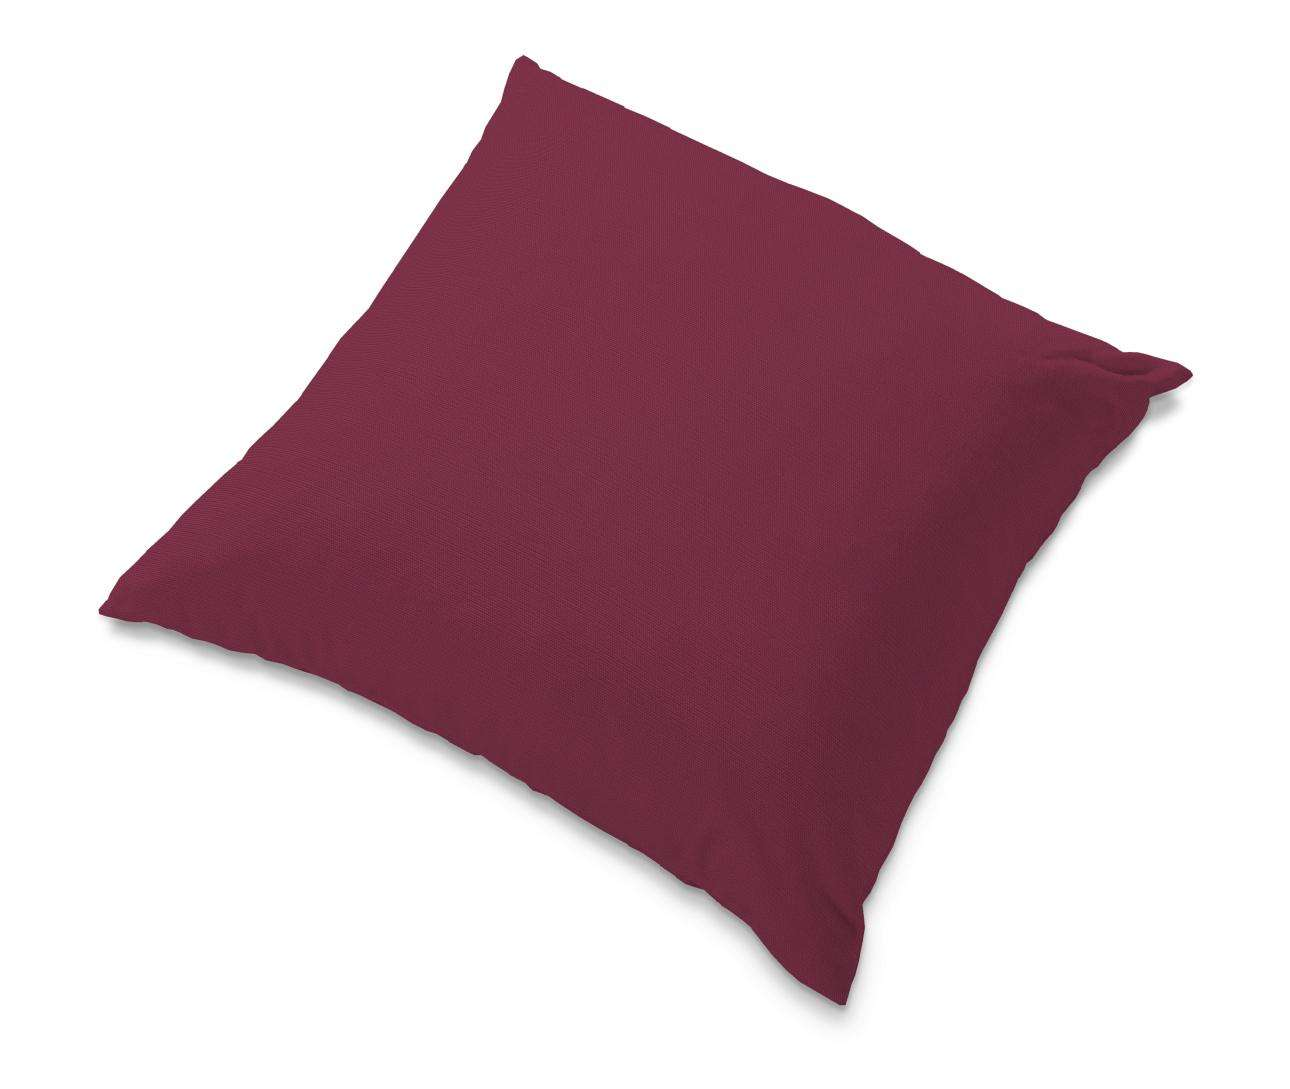 Tomelilla cushion cover 55 x 55 cm (22 x 22 inch) in collection Cotton Panama, fabric: 702-32